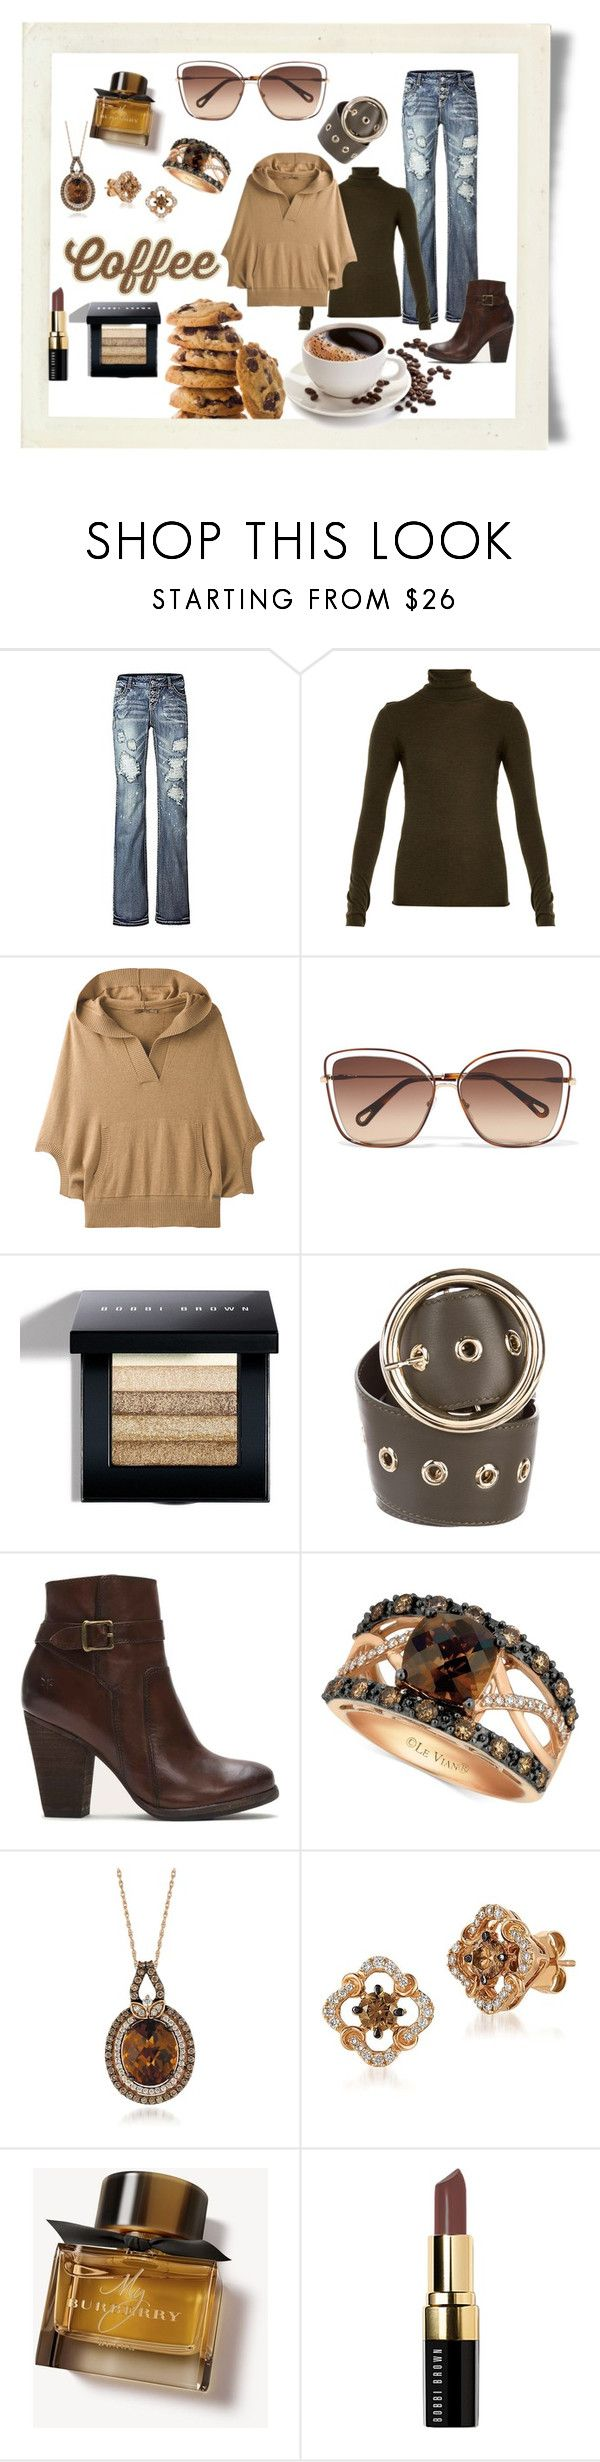 """""""Coffee: Elixir of Life"""" by shoultesshark ❤ liked on Polyvore featuring Joseph, prAna, Chloé, Bobbi Brown Cosmetics, Elie Saab, Frye, LE VIAN and Burberry"""